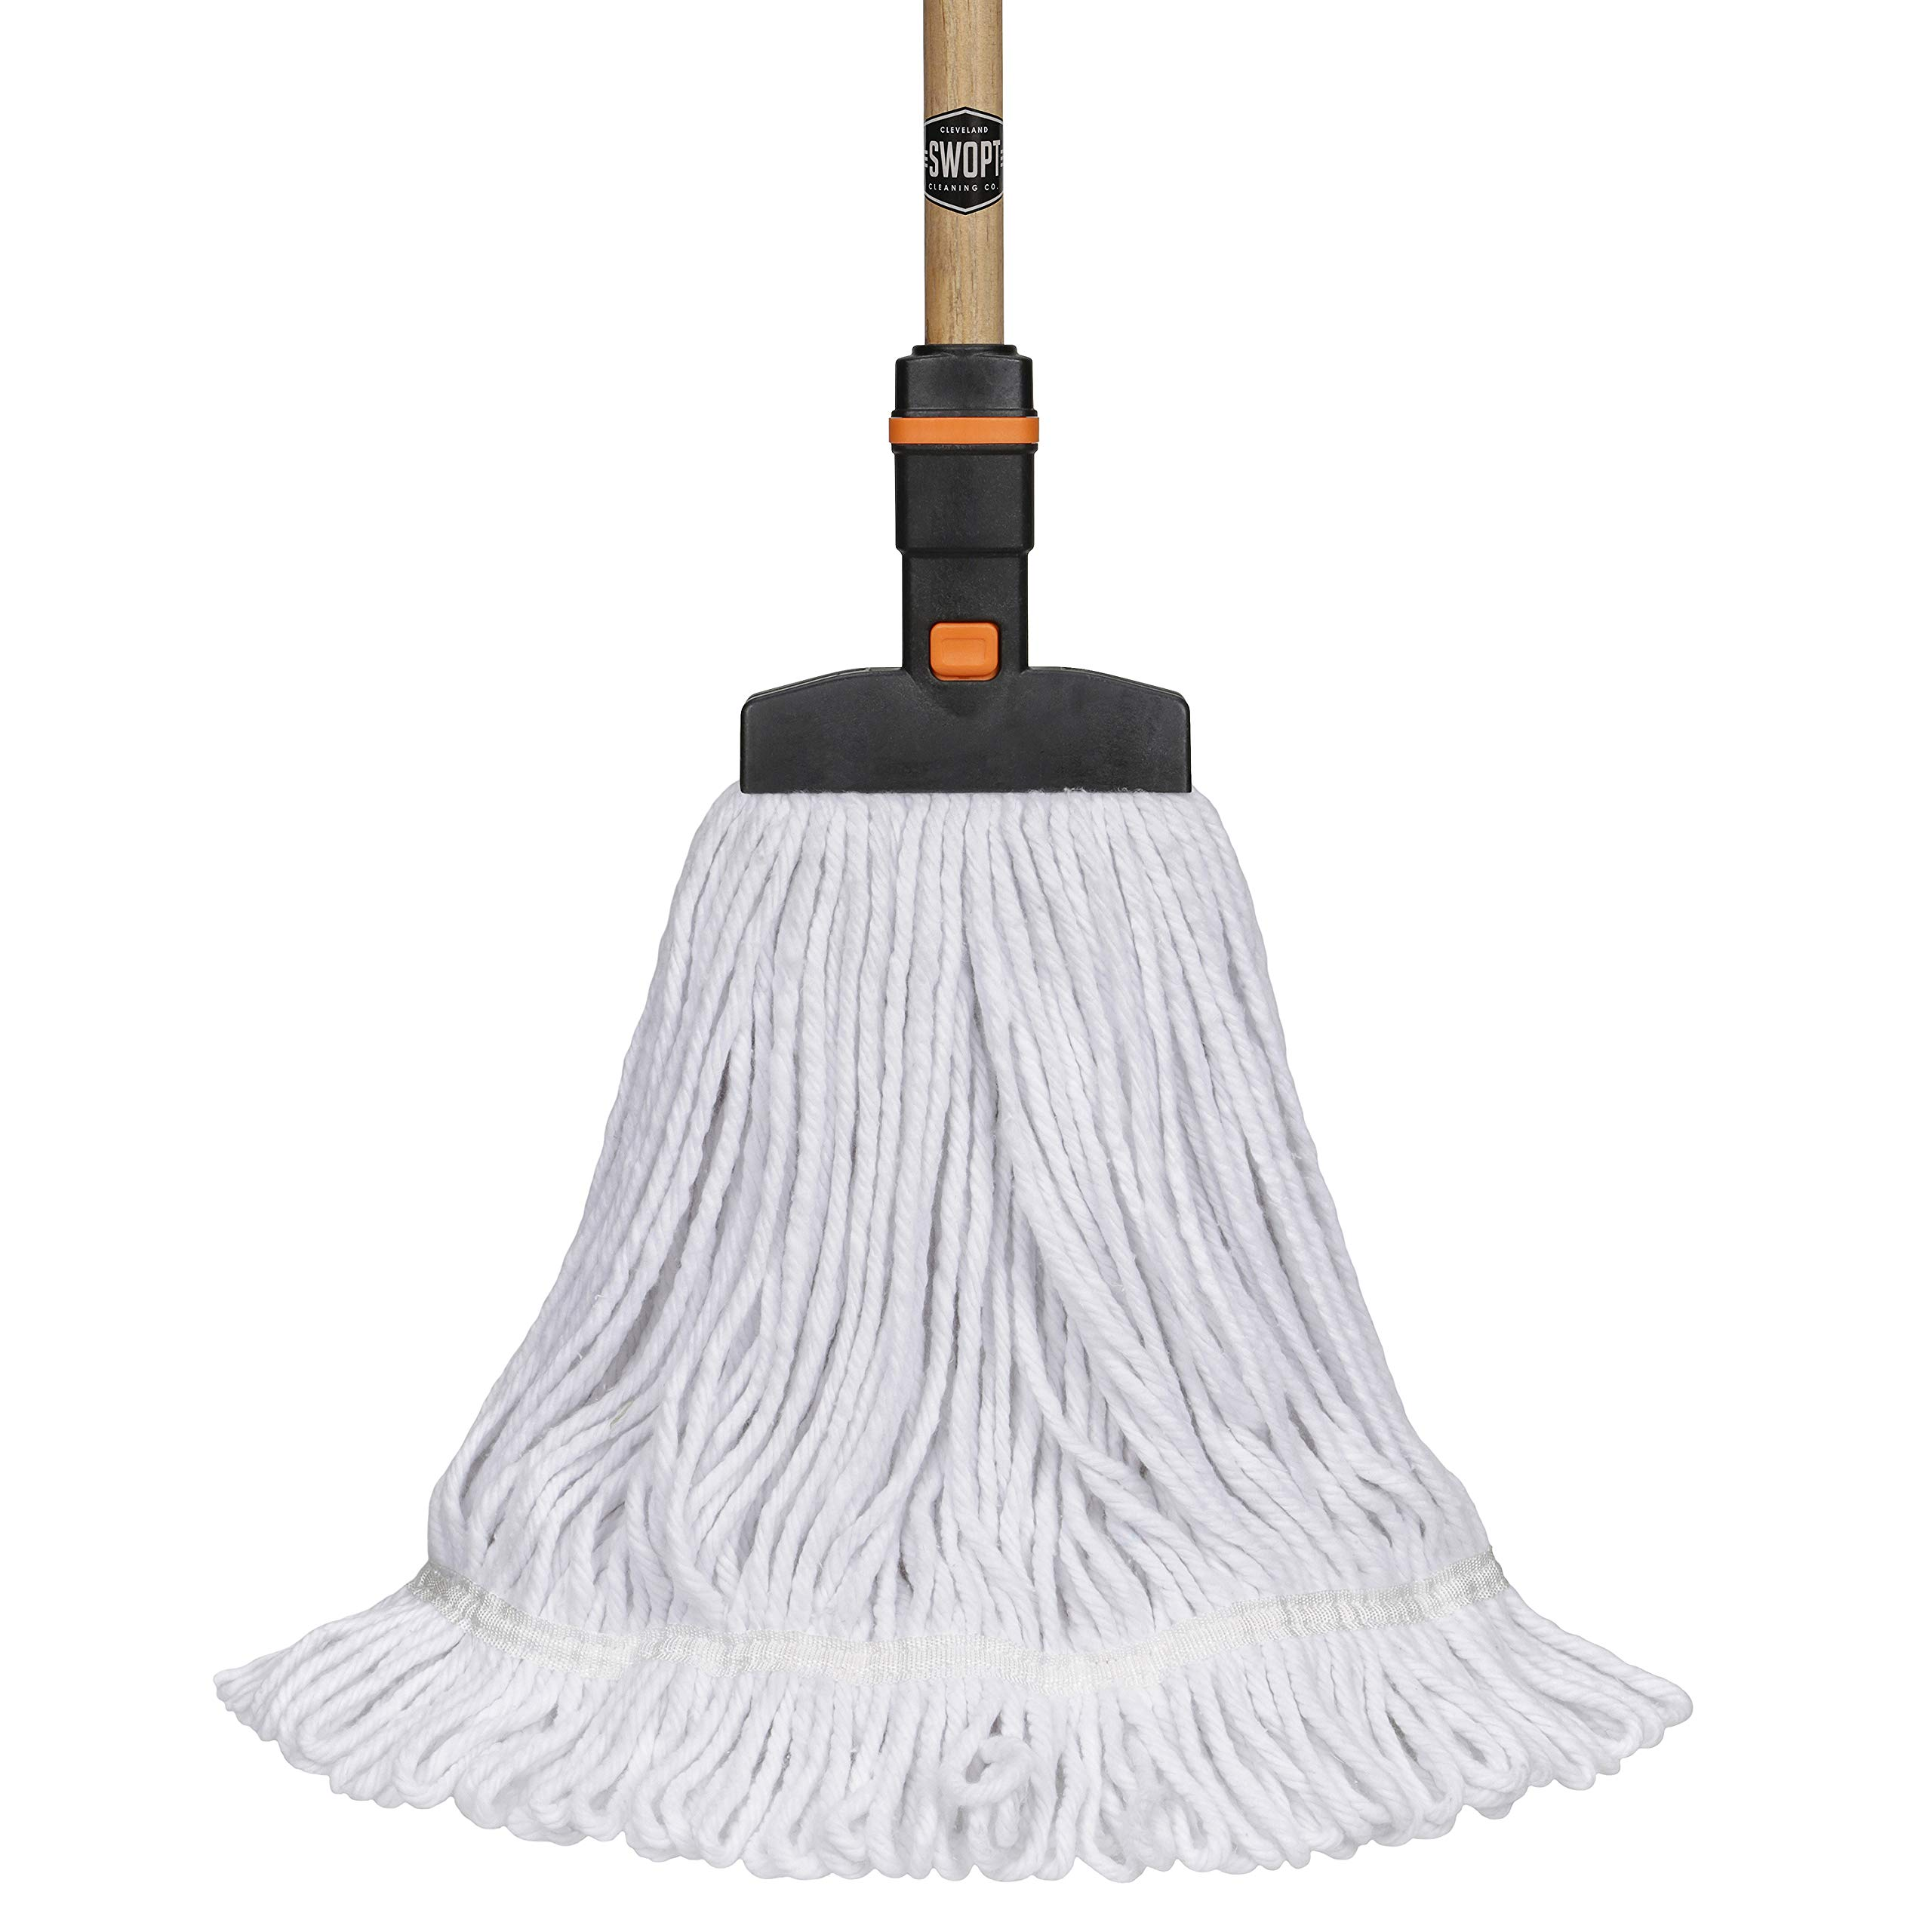 "SWOPT Cotton Mop –60"" Premium Wood Handle –EVA Foam Comfort Grip Provides Comfort, Control, Efficiency –Mop Safe for Wood, Laminate or Tile –Handle Interchangeable with Other SWOPT Products"